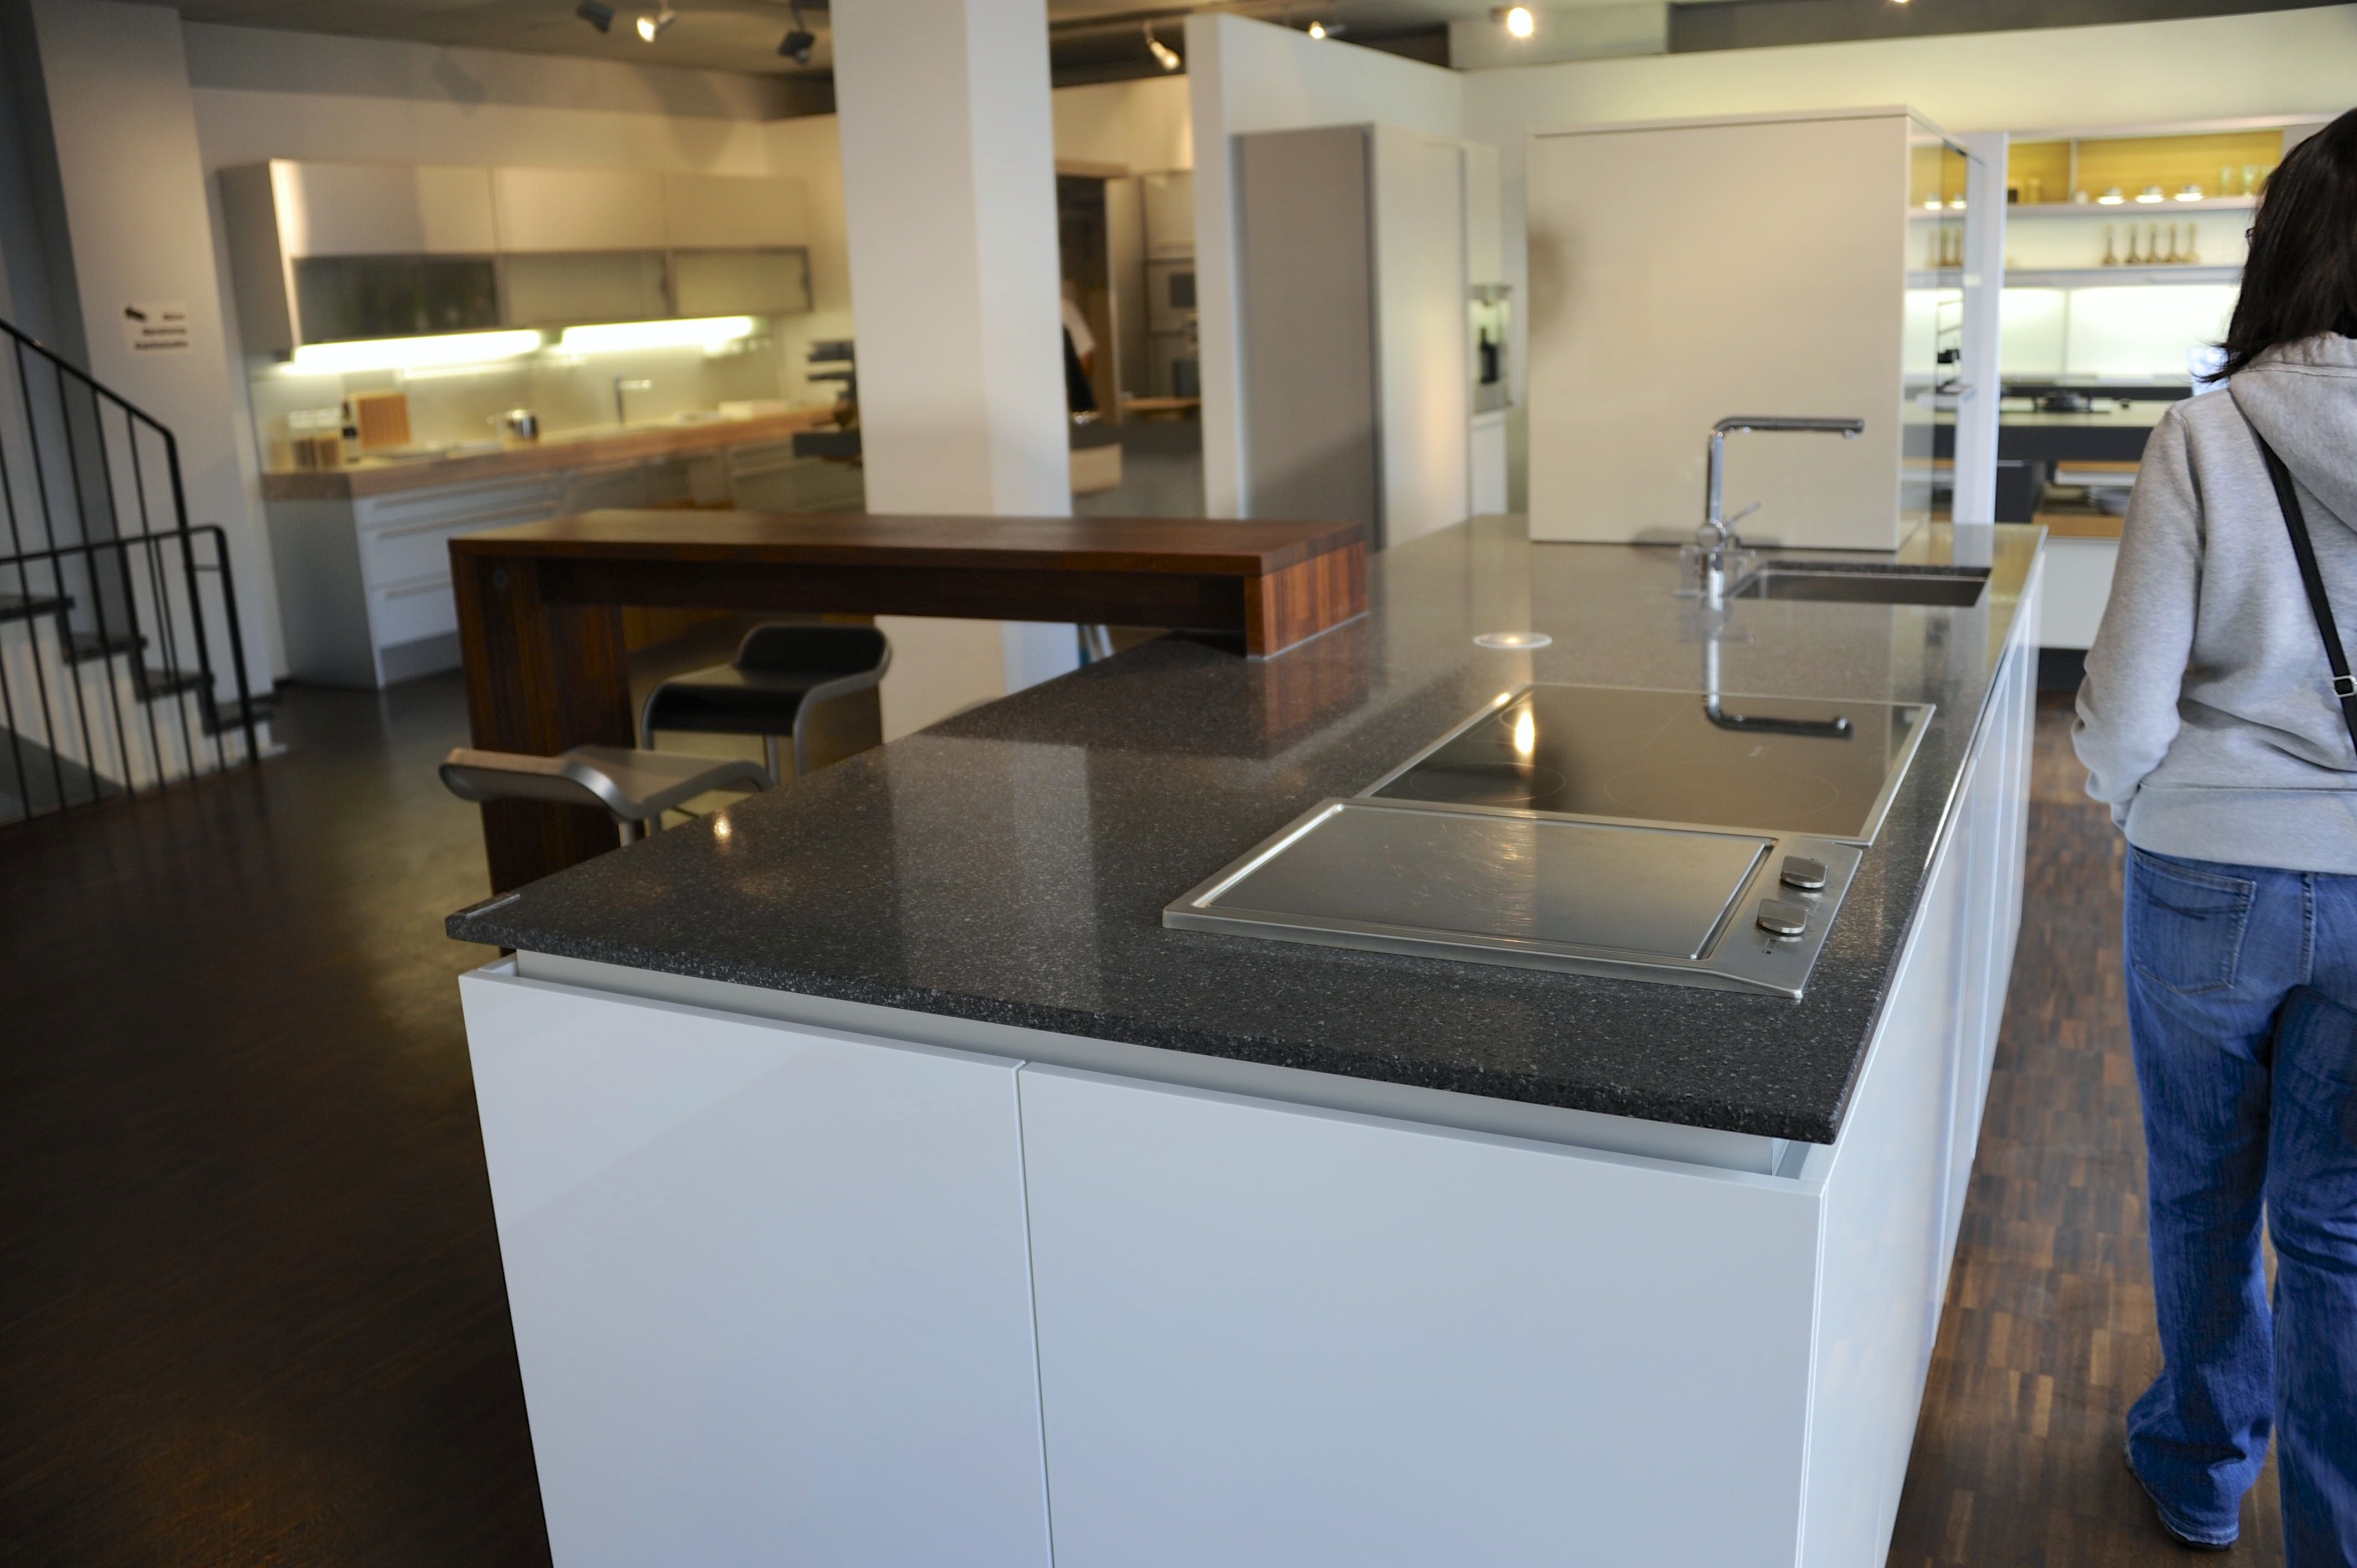 Kitchen Islands With Sink And Stove Top  b091748c1376